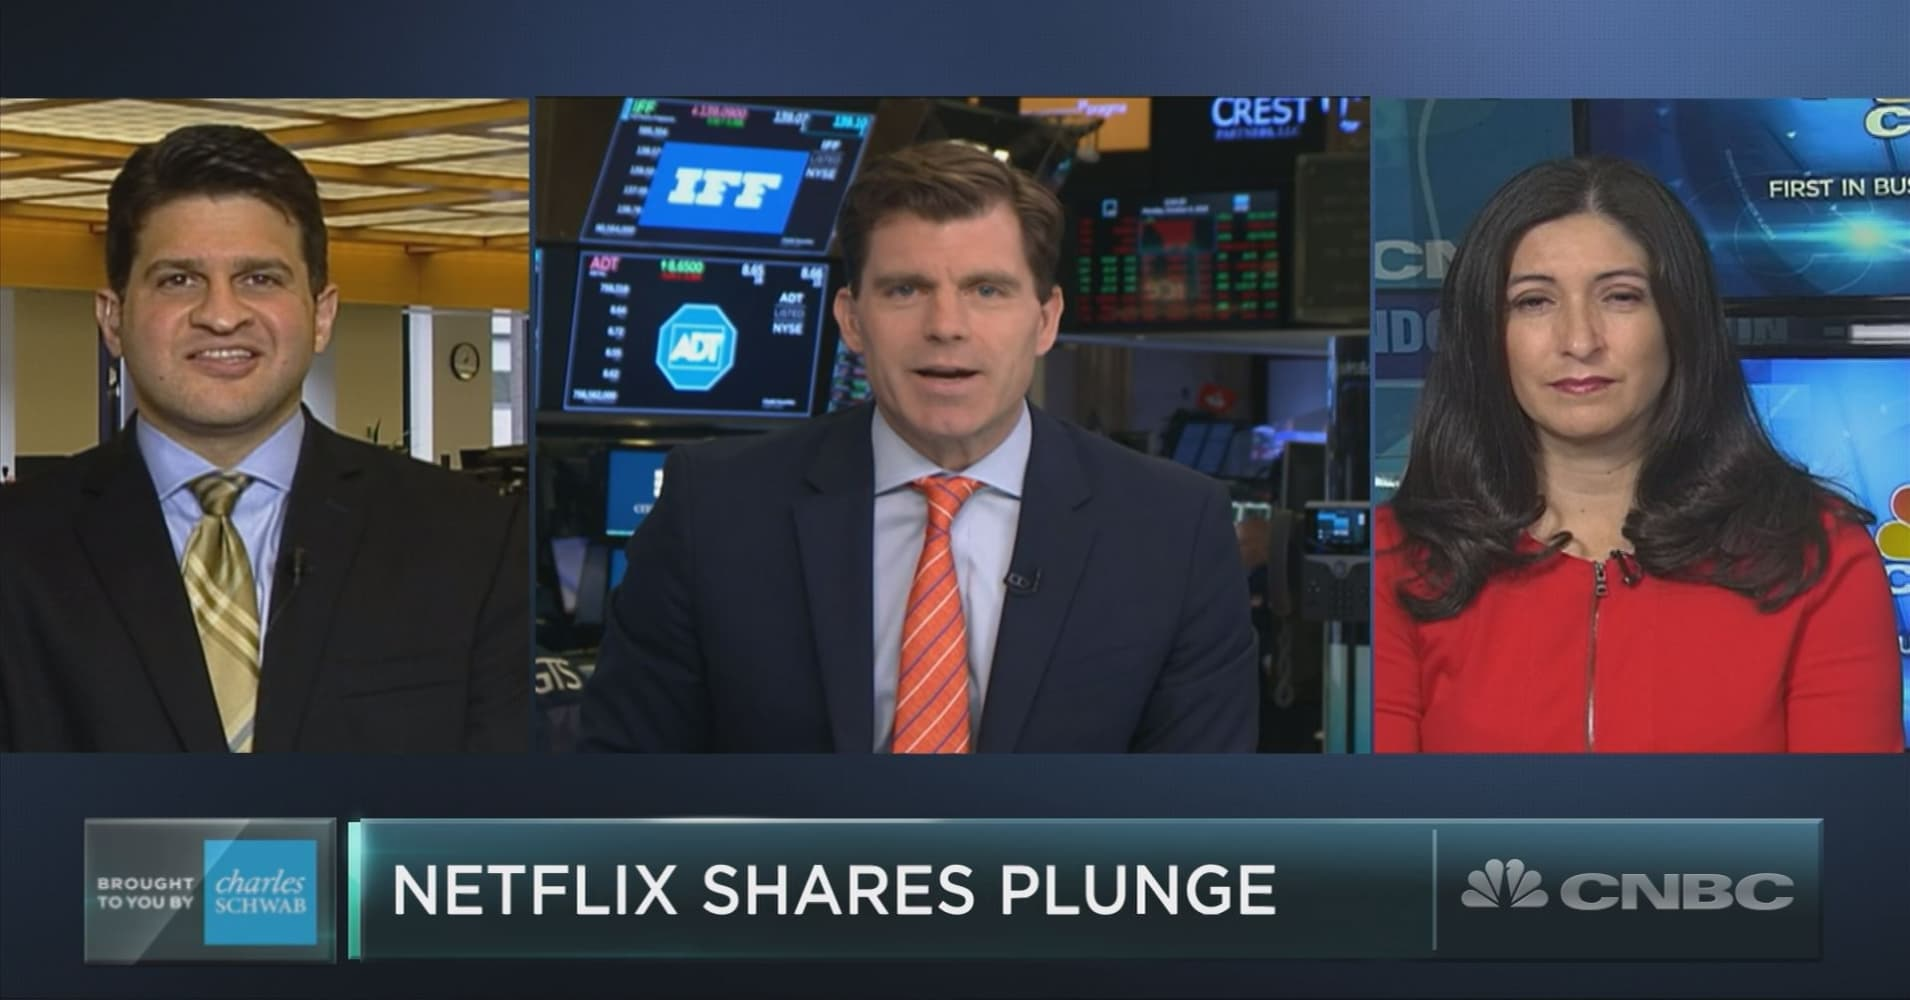 Watch Netflix Shares Take a Plunge video